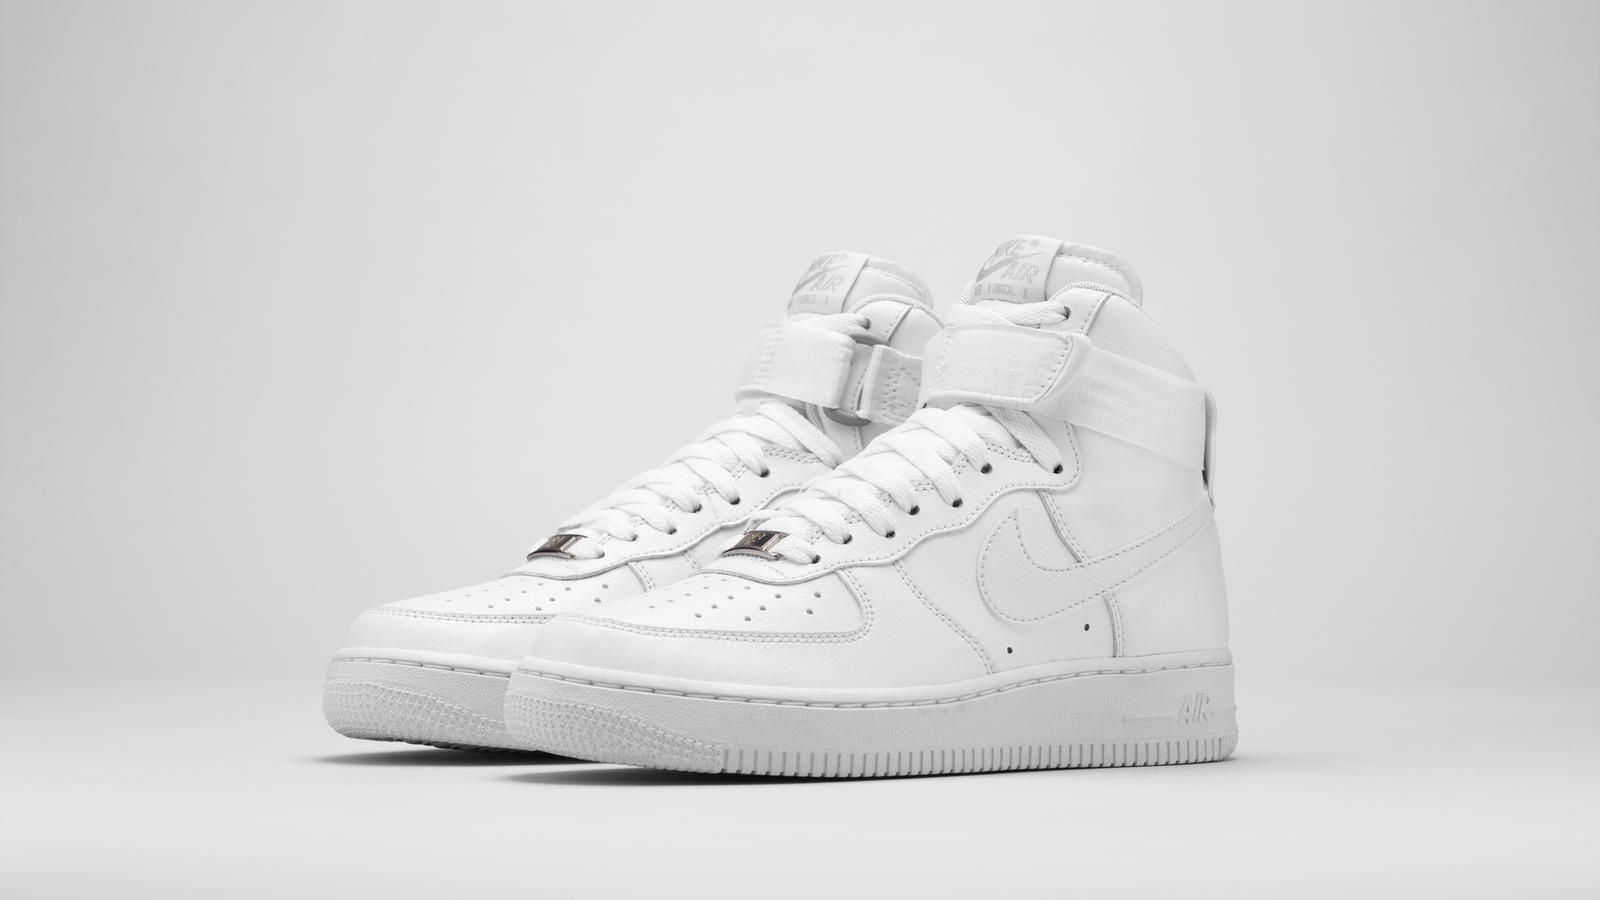 air force 1 high. air force 1 low outsole. air force 1 low.  air force 1 ultra low outsole d4a5d7a47